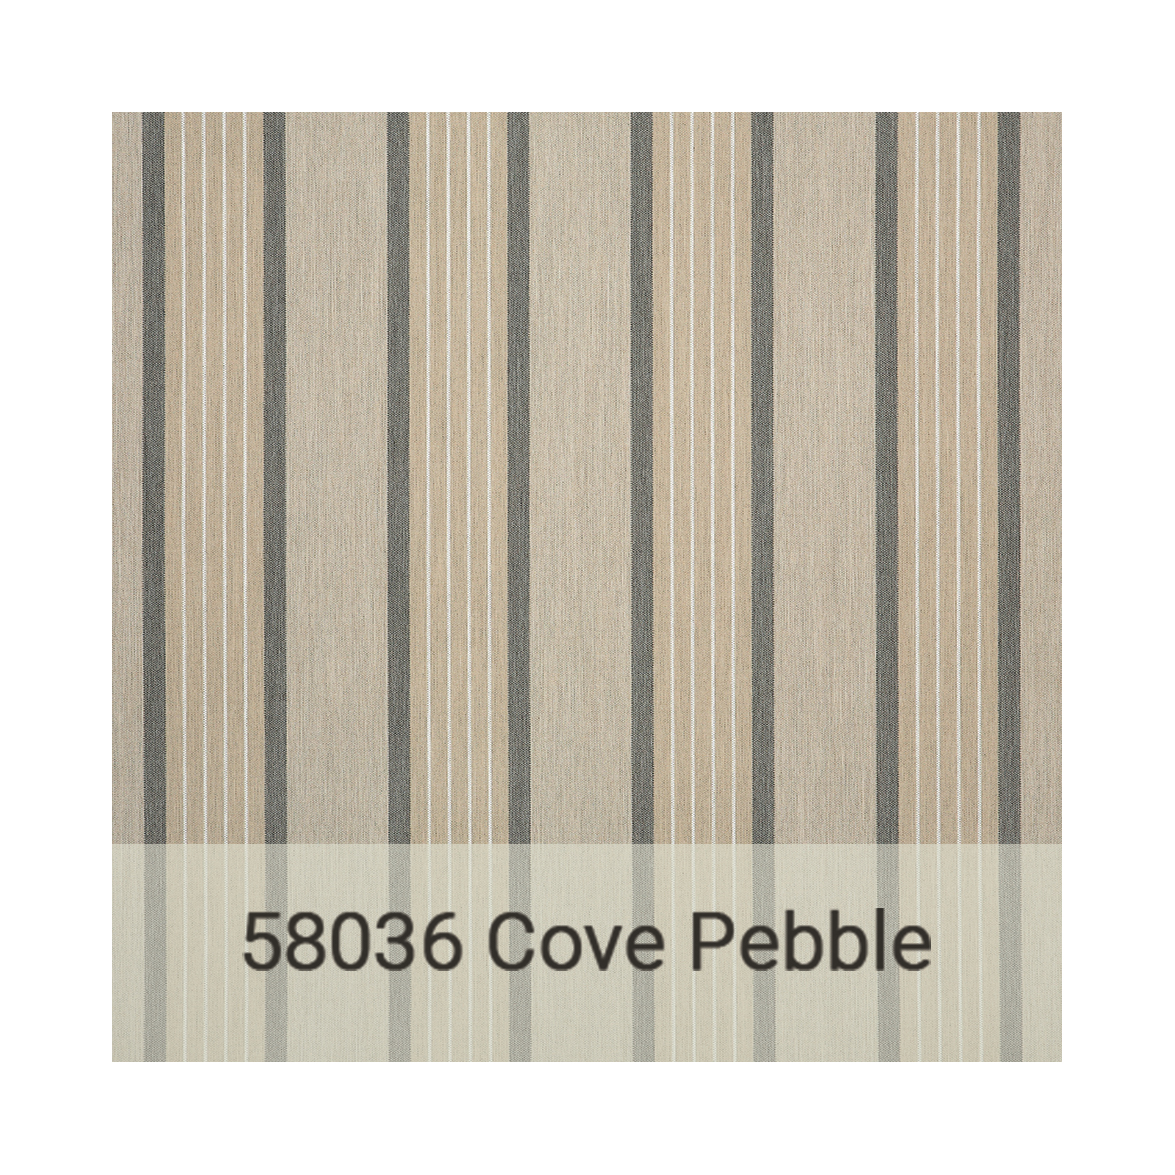 Kingston Casual Sunbrella gradeb-58036-cove-pebble